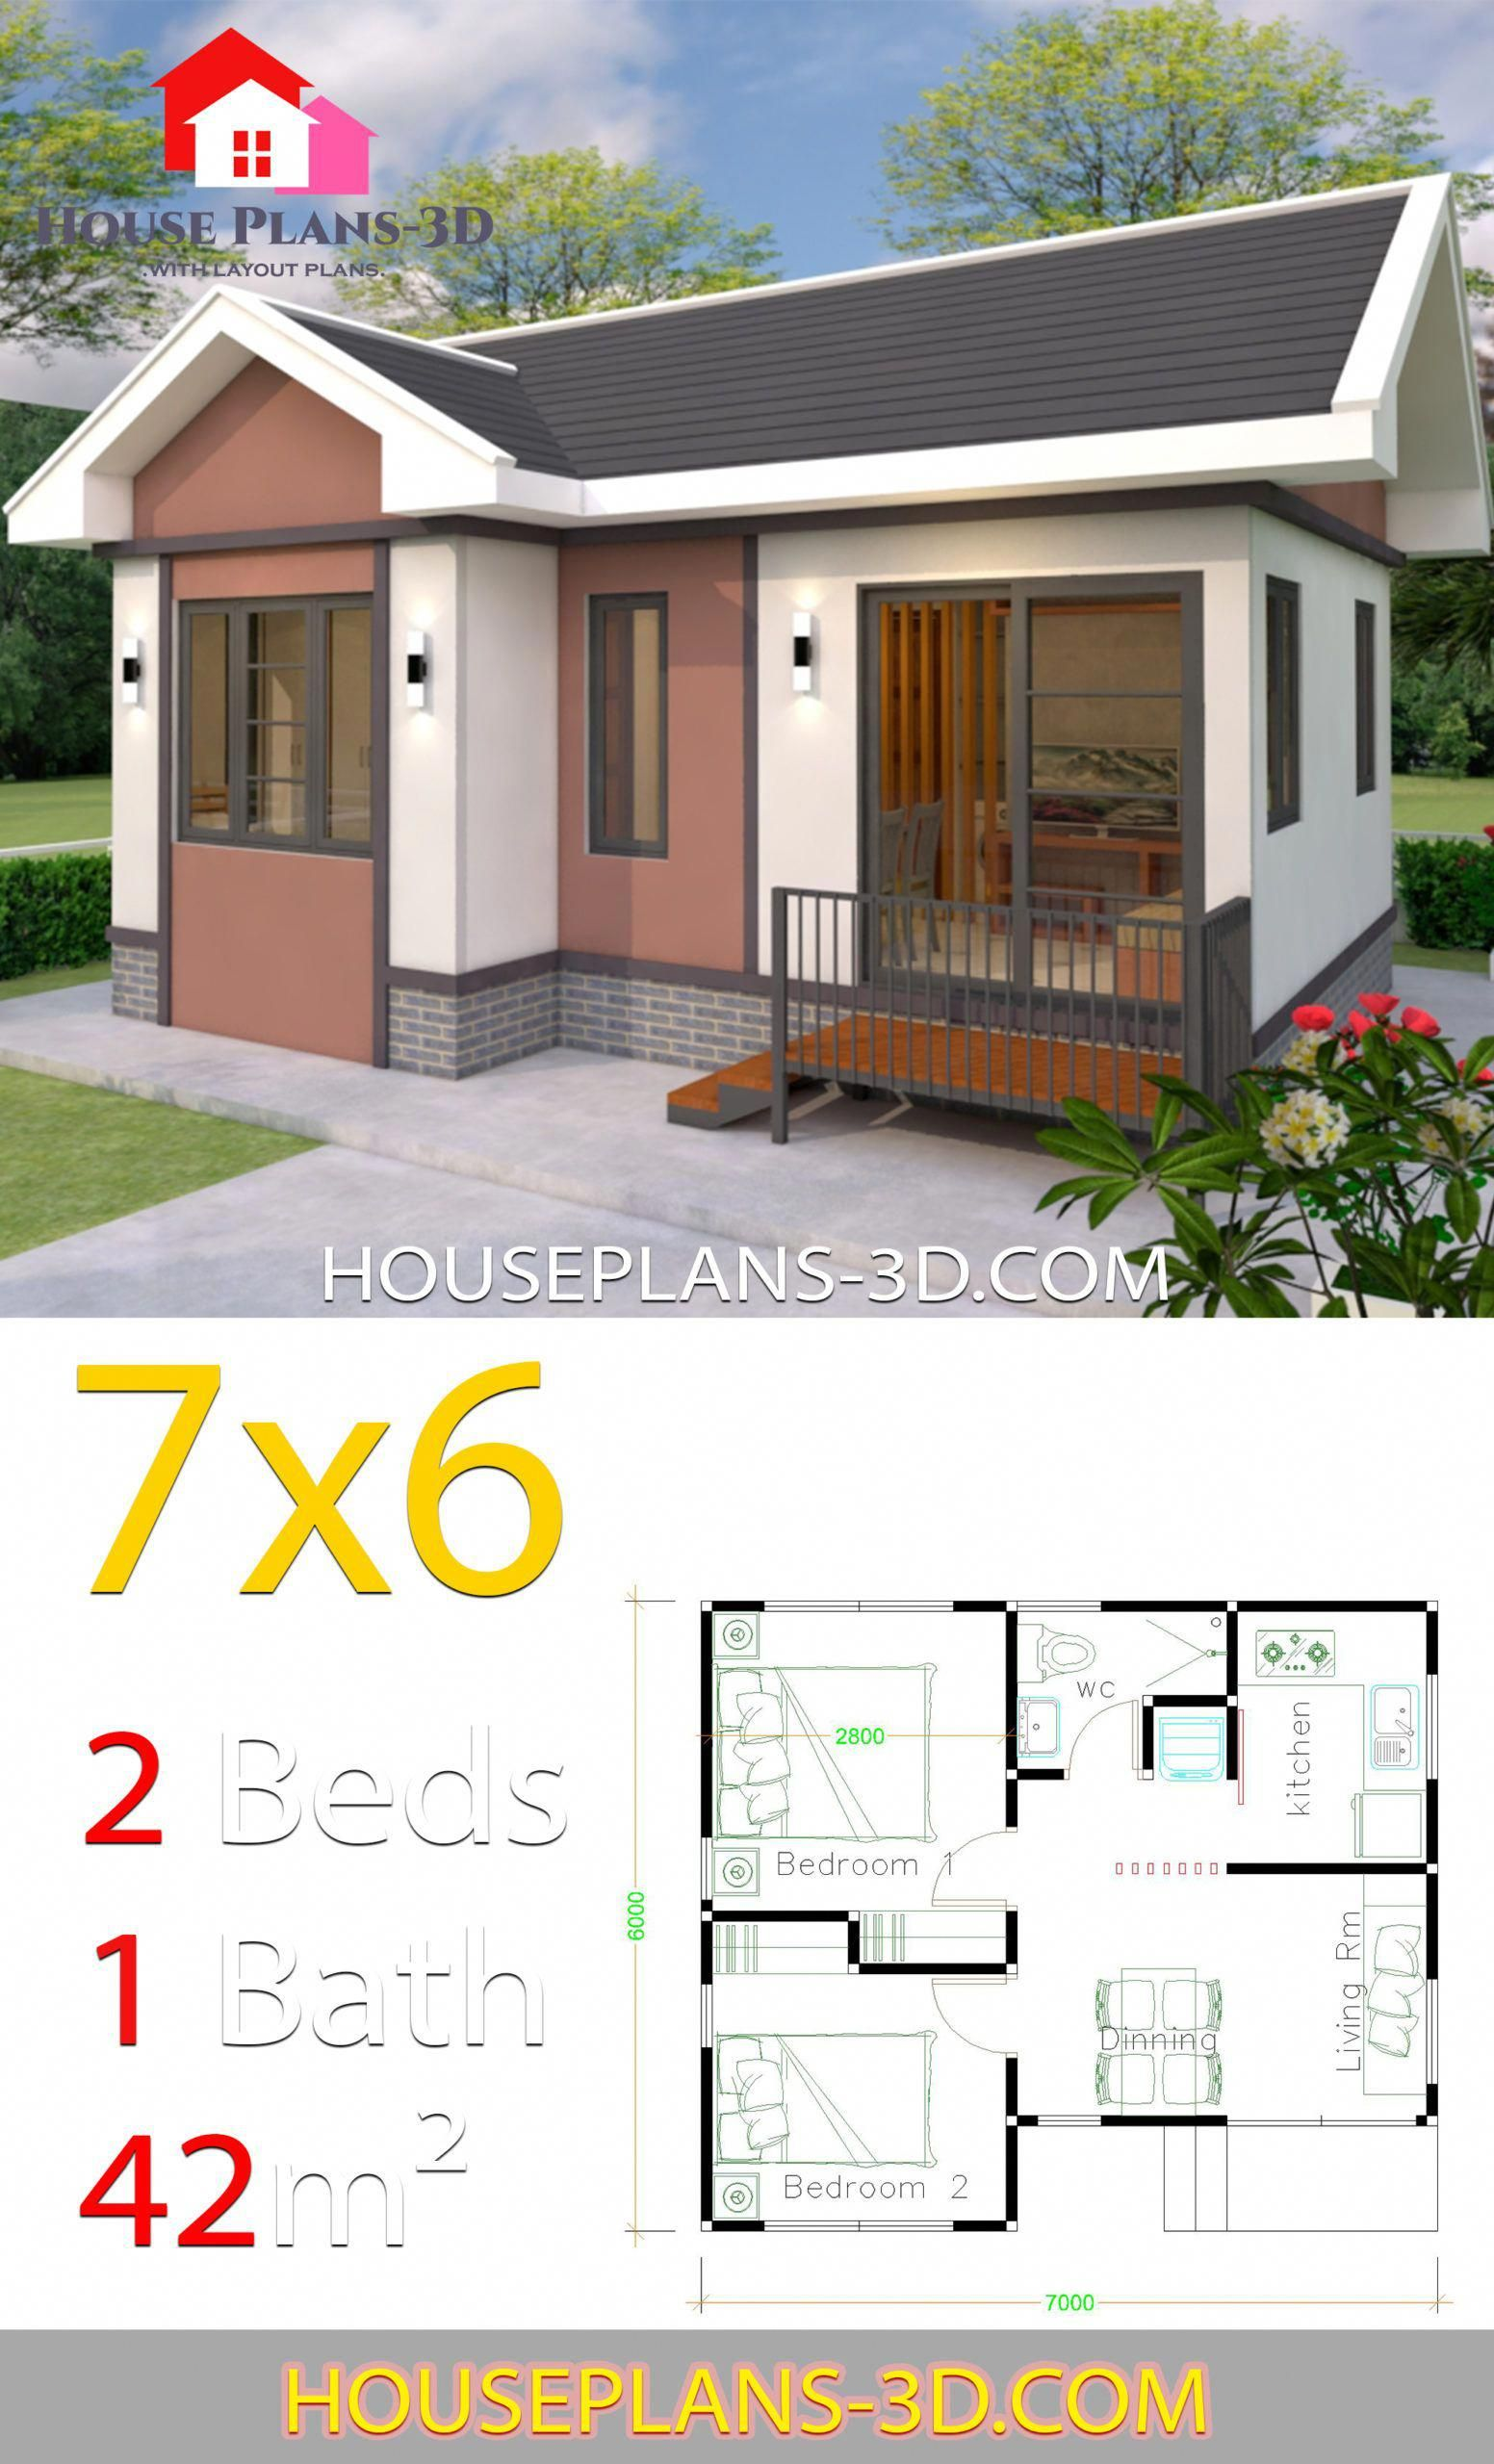 House Plans Design 7x6 With 2 Bedrooms Gable Roof House Plans 3d Smallhousedecorating In 2020 House Plan Gallery House Plans House Construction Plan